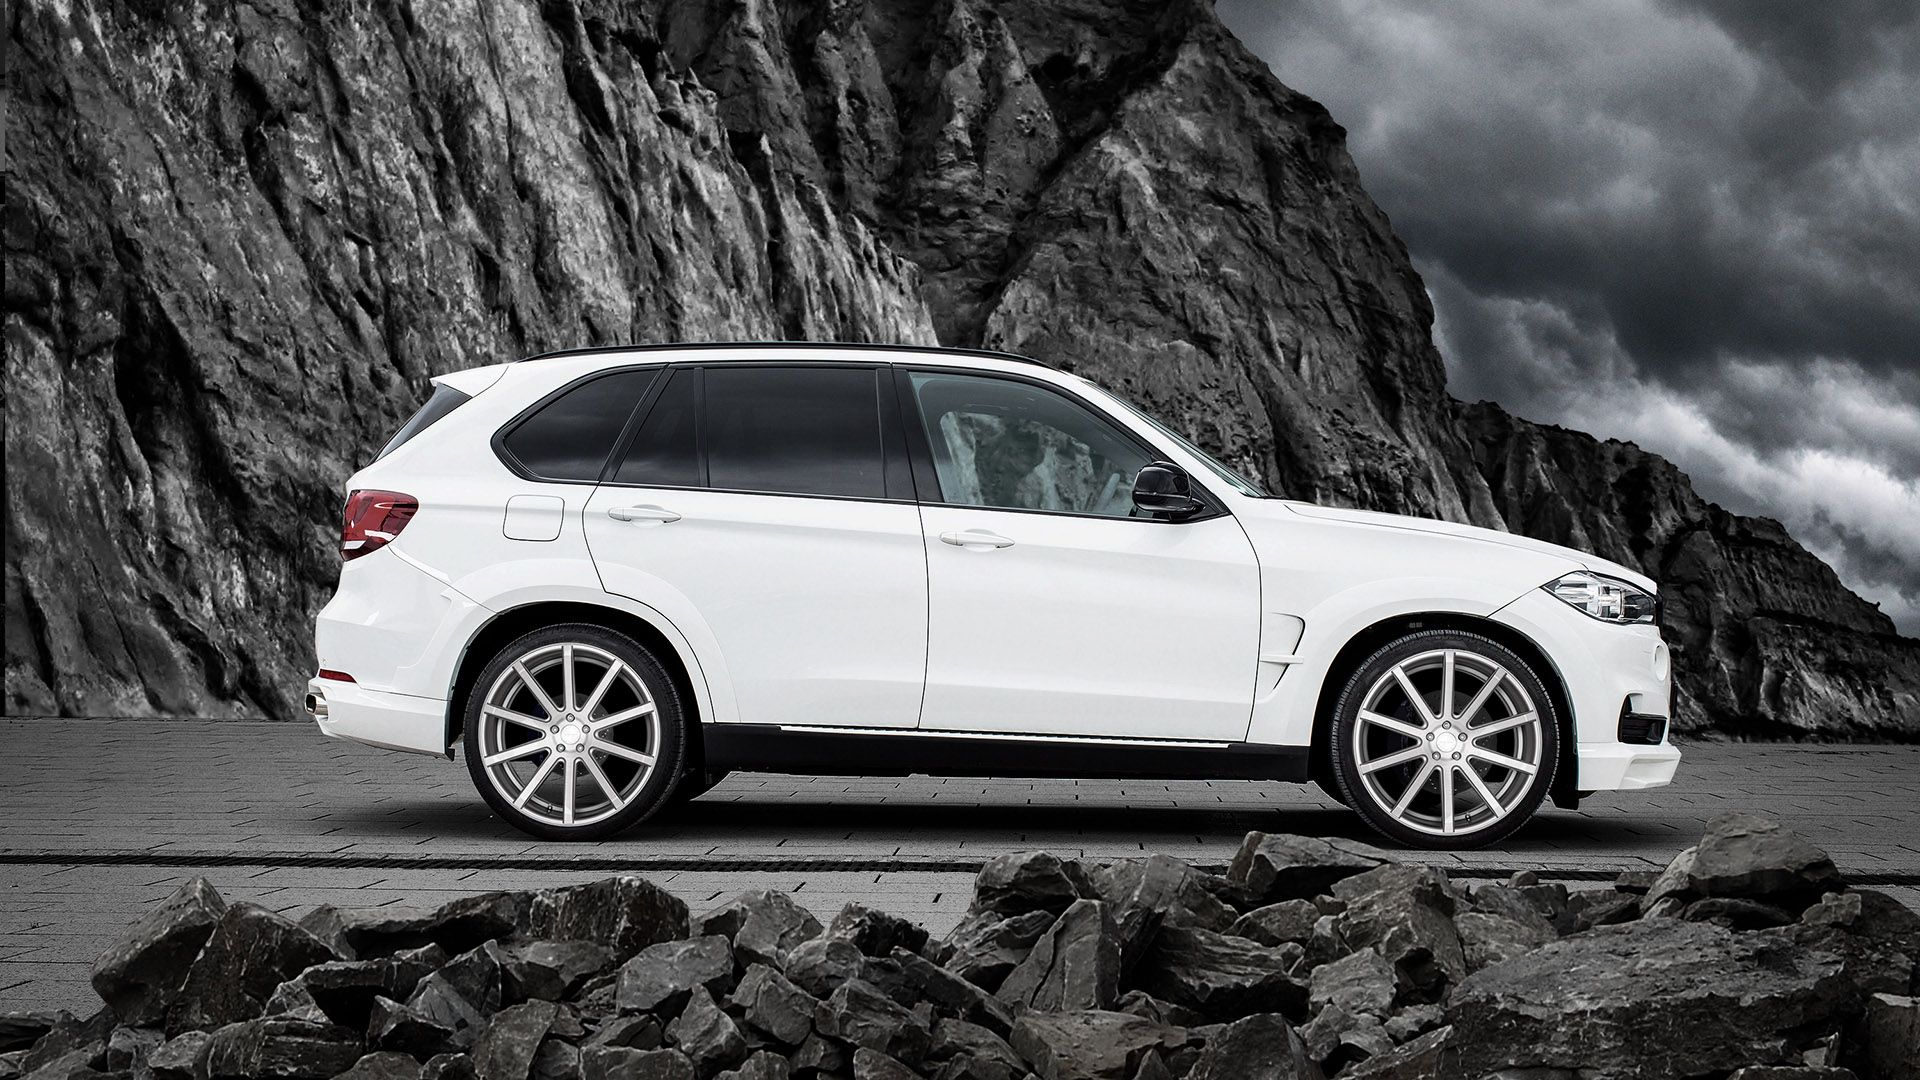 Jms experts make things cool with the bmw x5 racelook exclusive line 2016 jms bmw x5 f15 voltagebd Gallery